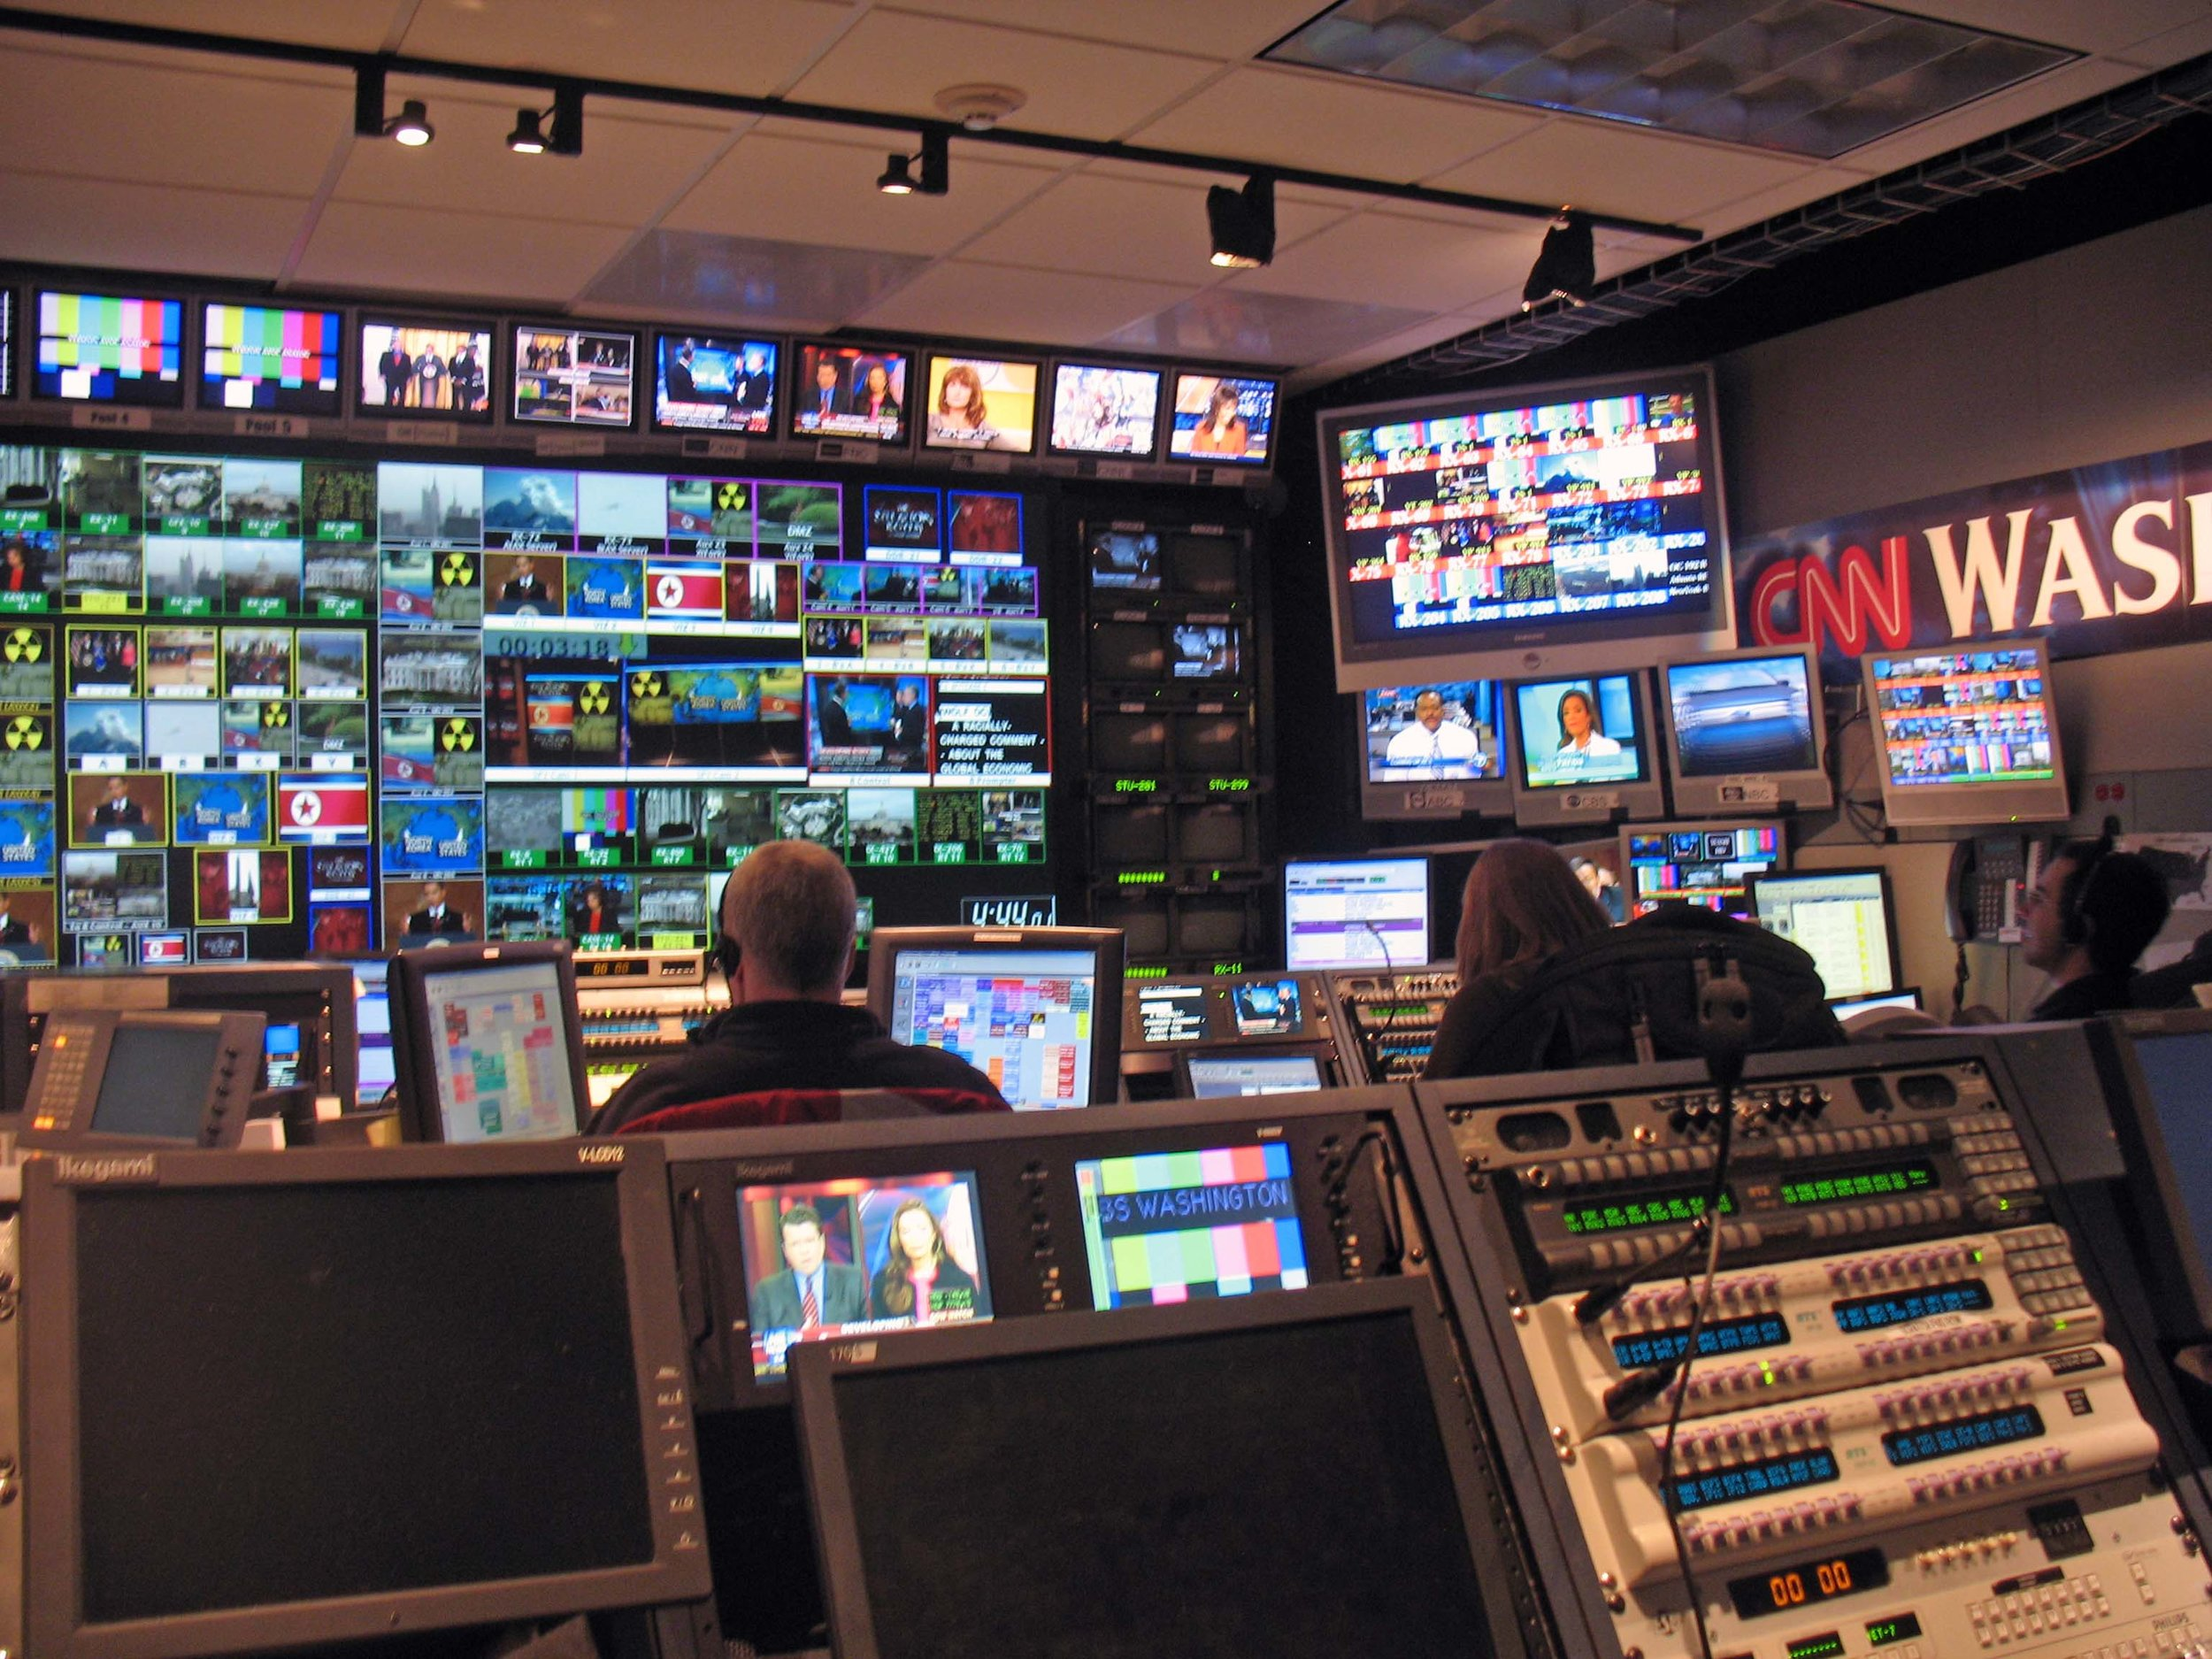 CNN control room during Wolf Blitzer's The Situation Room. By  Michael Newman , licensed under    CC BY-NC-ND 2.0